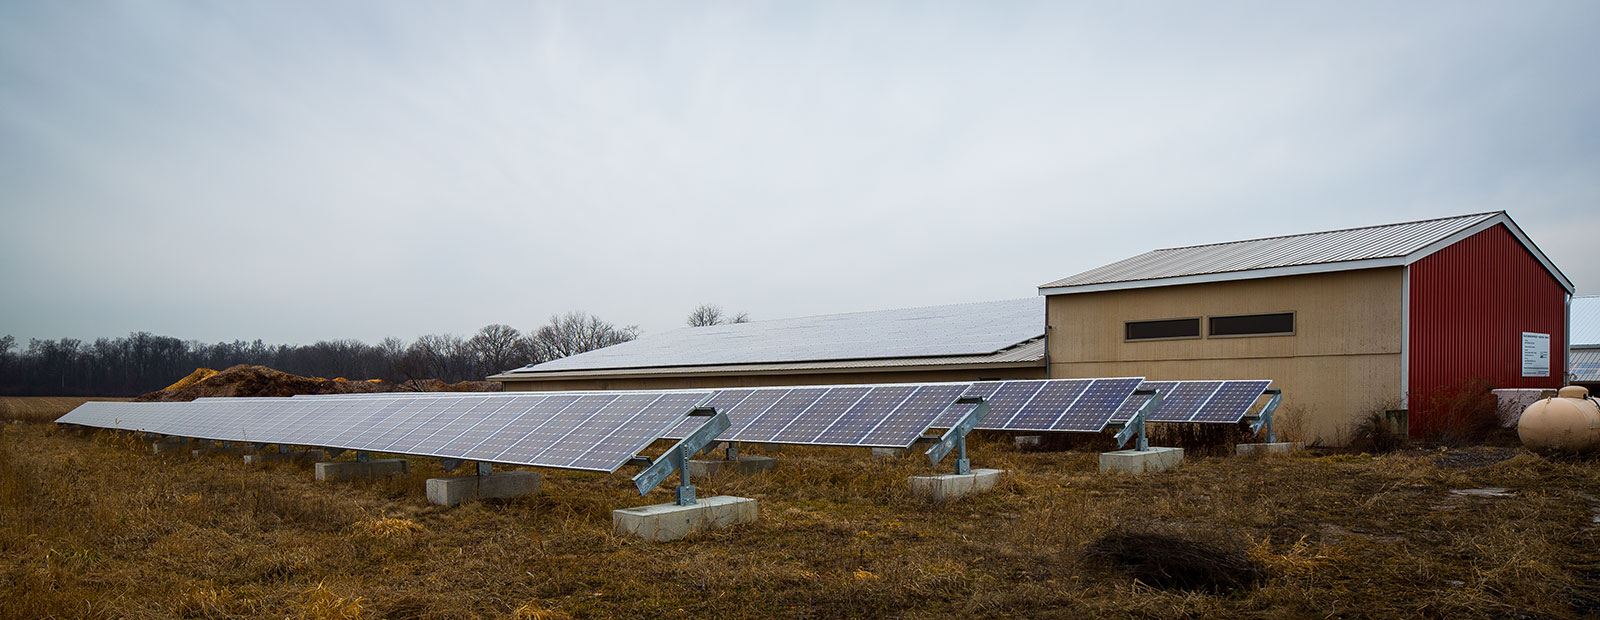 The Brinery's new solar-powered production facility